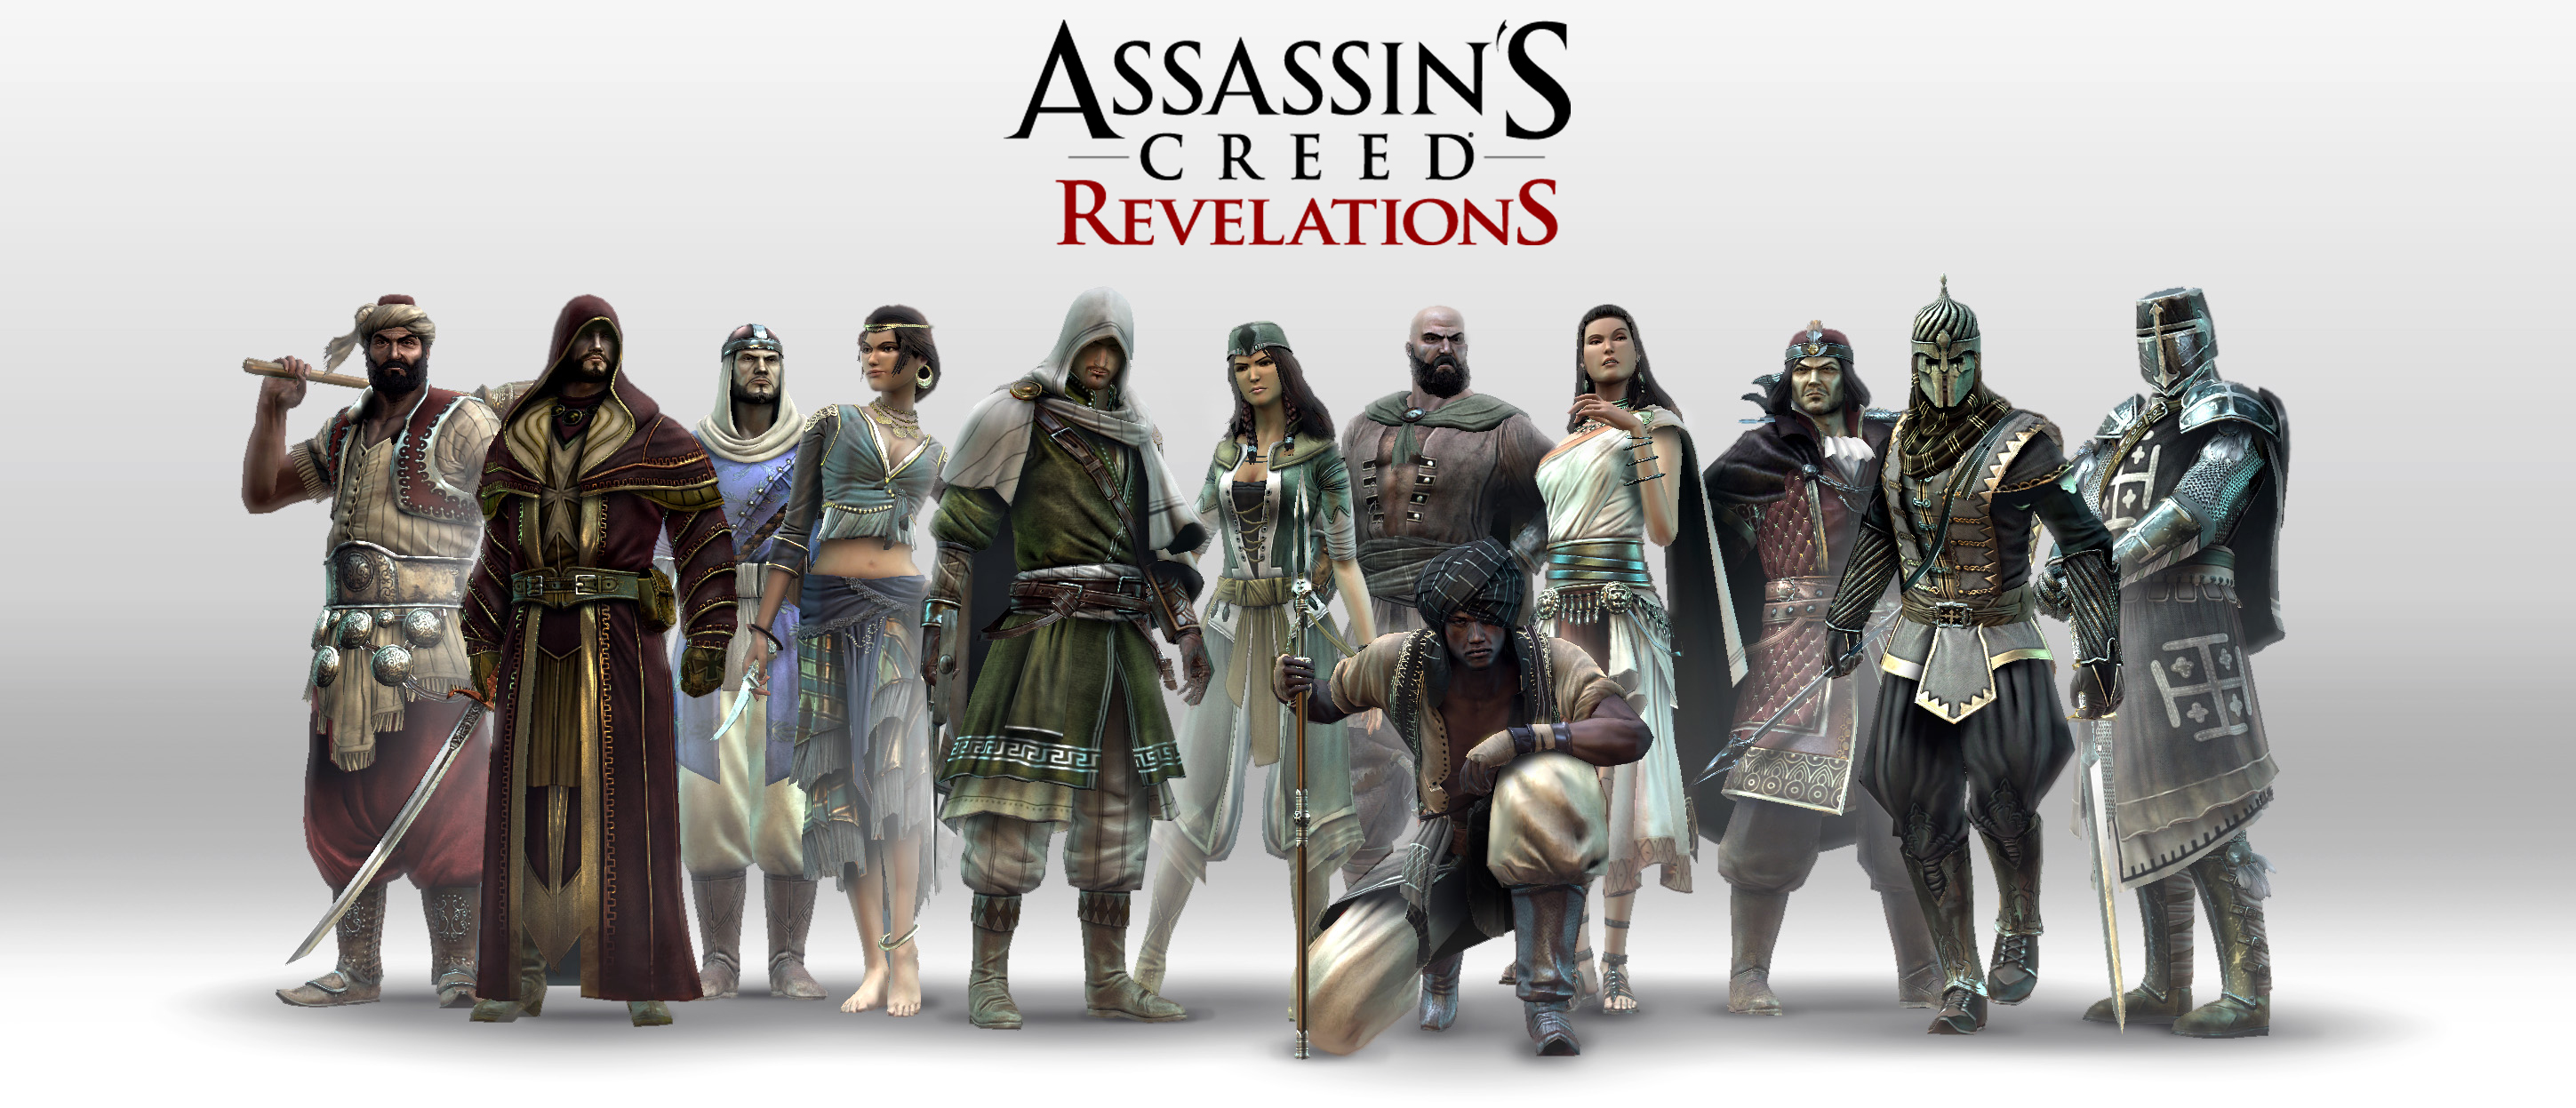 Assassin's Creed 2 multiplayer